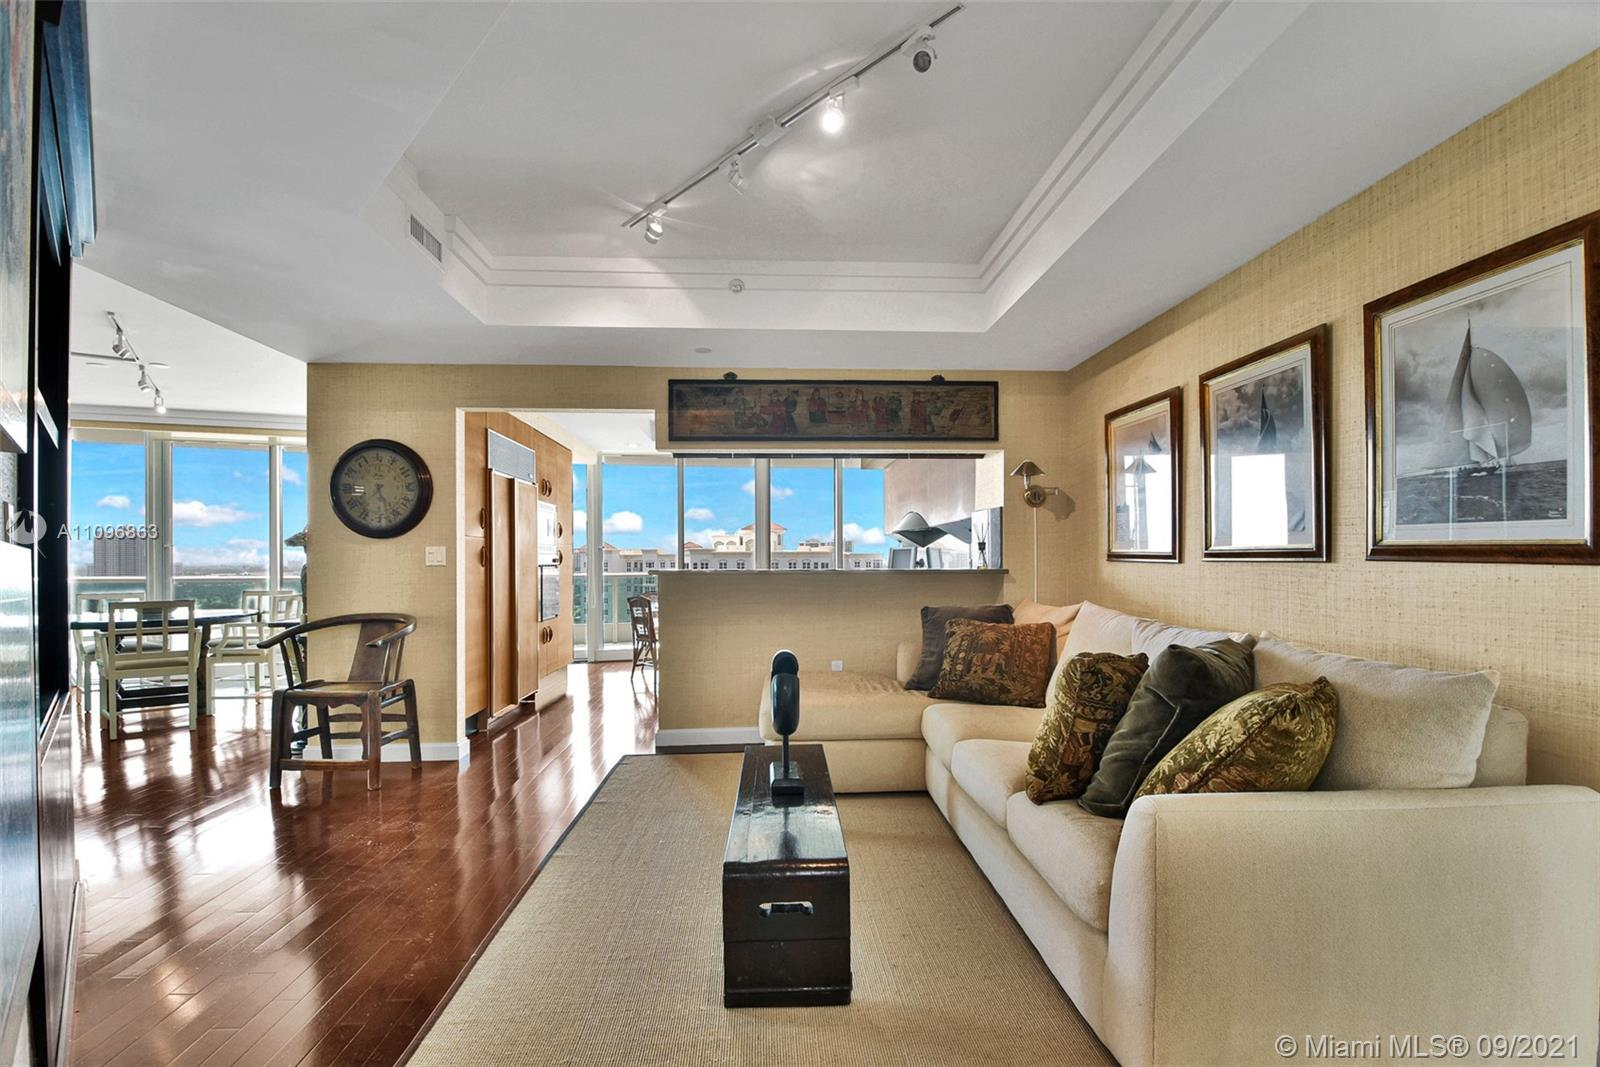 Enjoy this beautiful furnished 2 bedroom paradise in the sky, located in the most exclusive and luxu